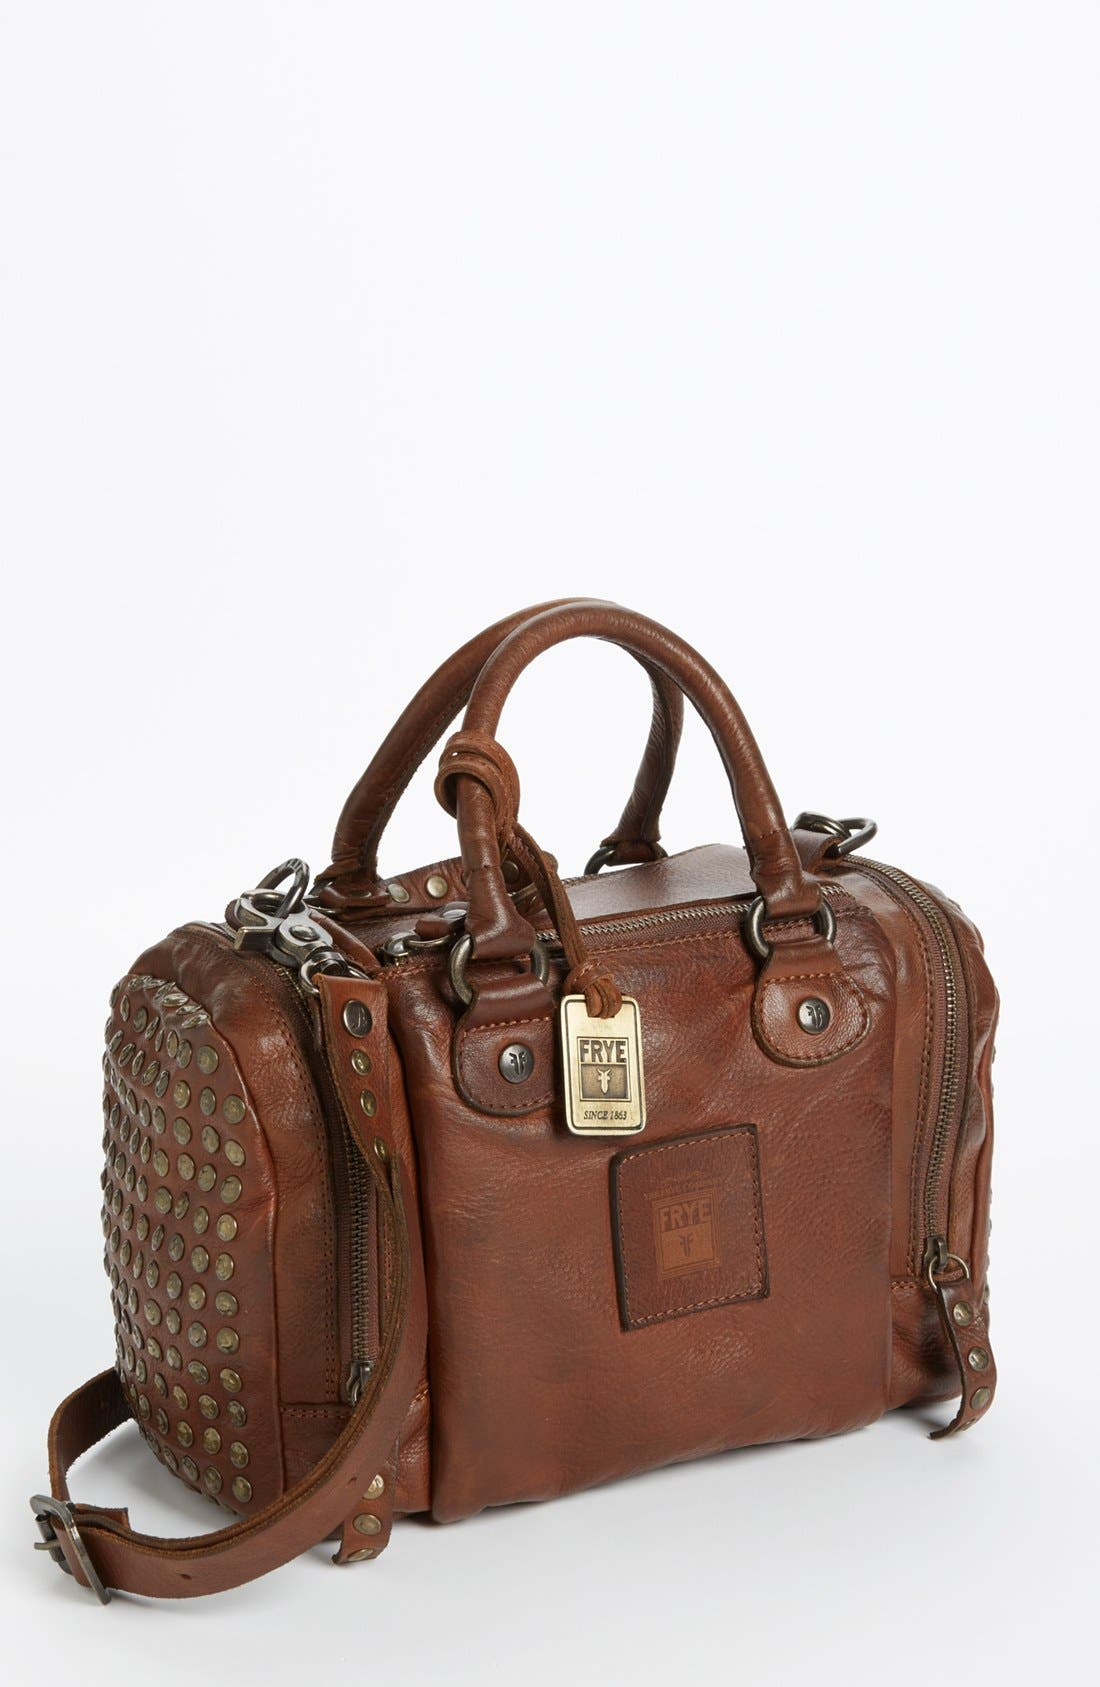 Main Image - Frye 'Brooke Speedy' Leather Satchel, Small (Online Only)